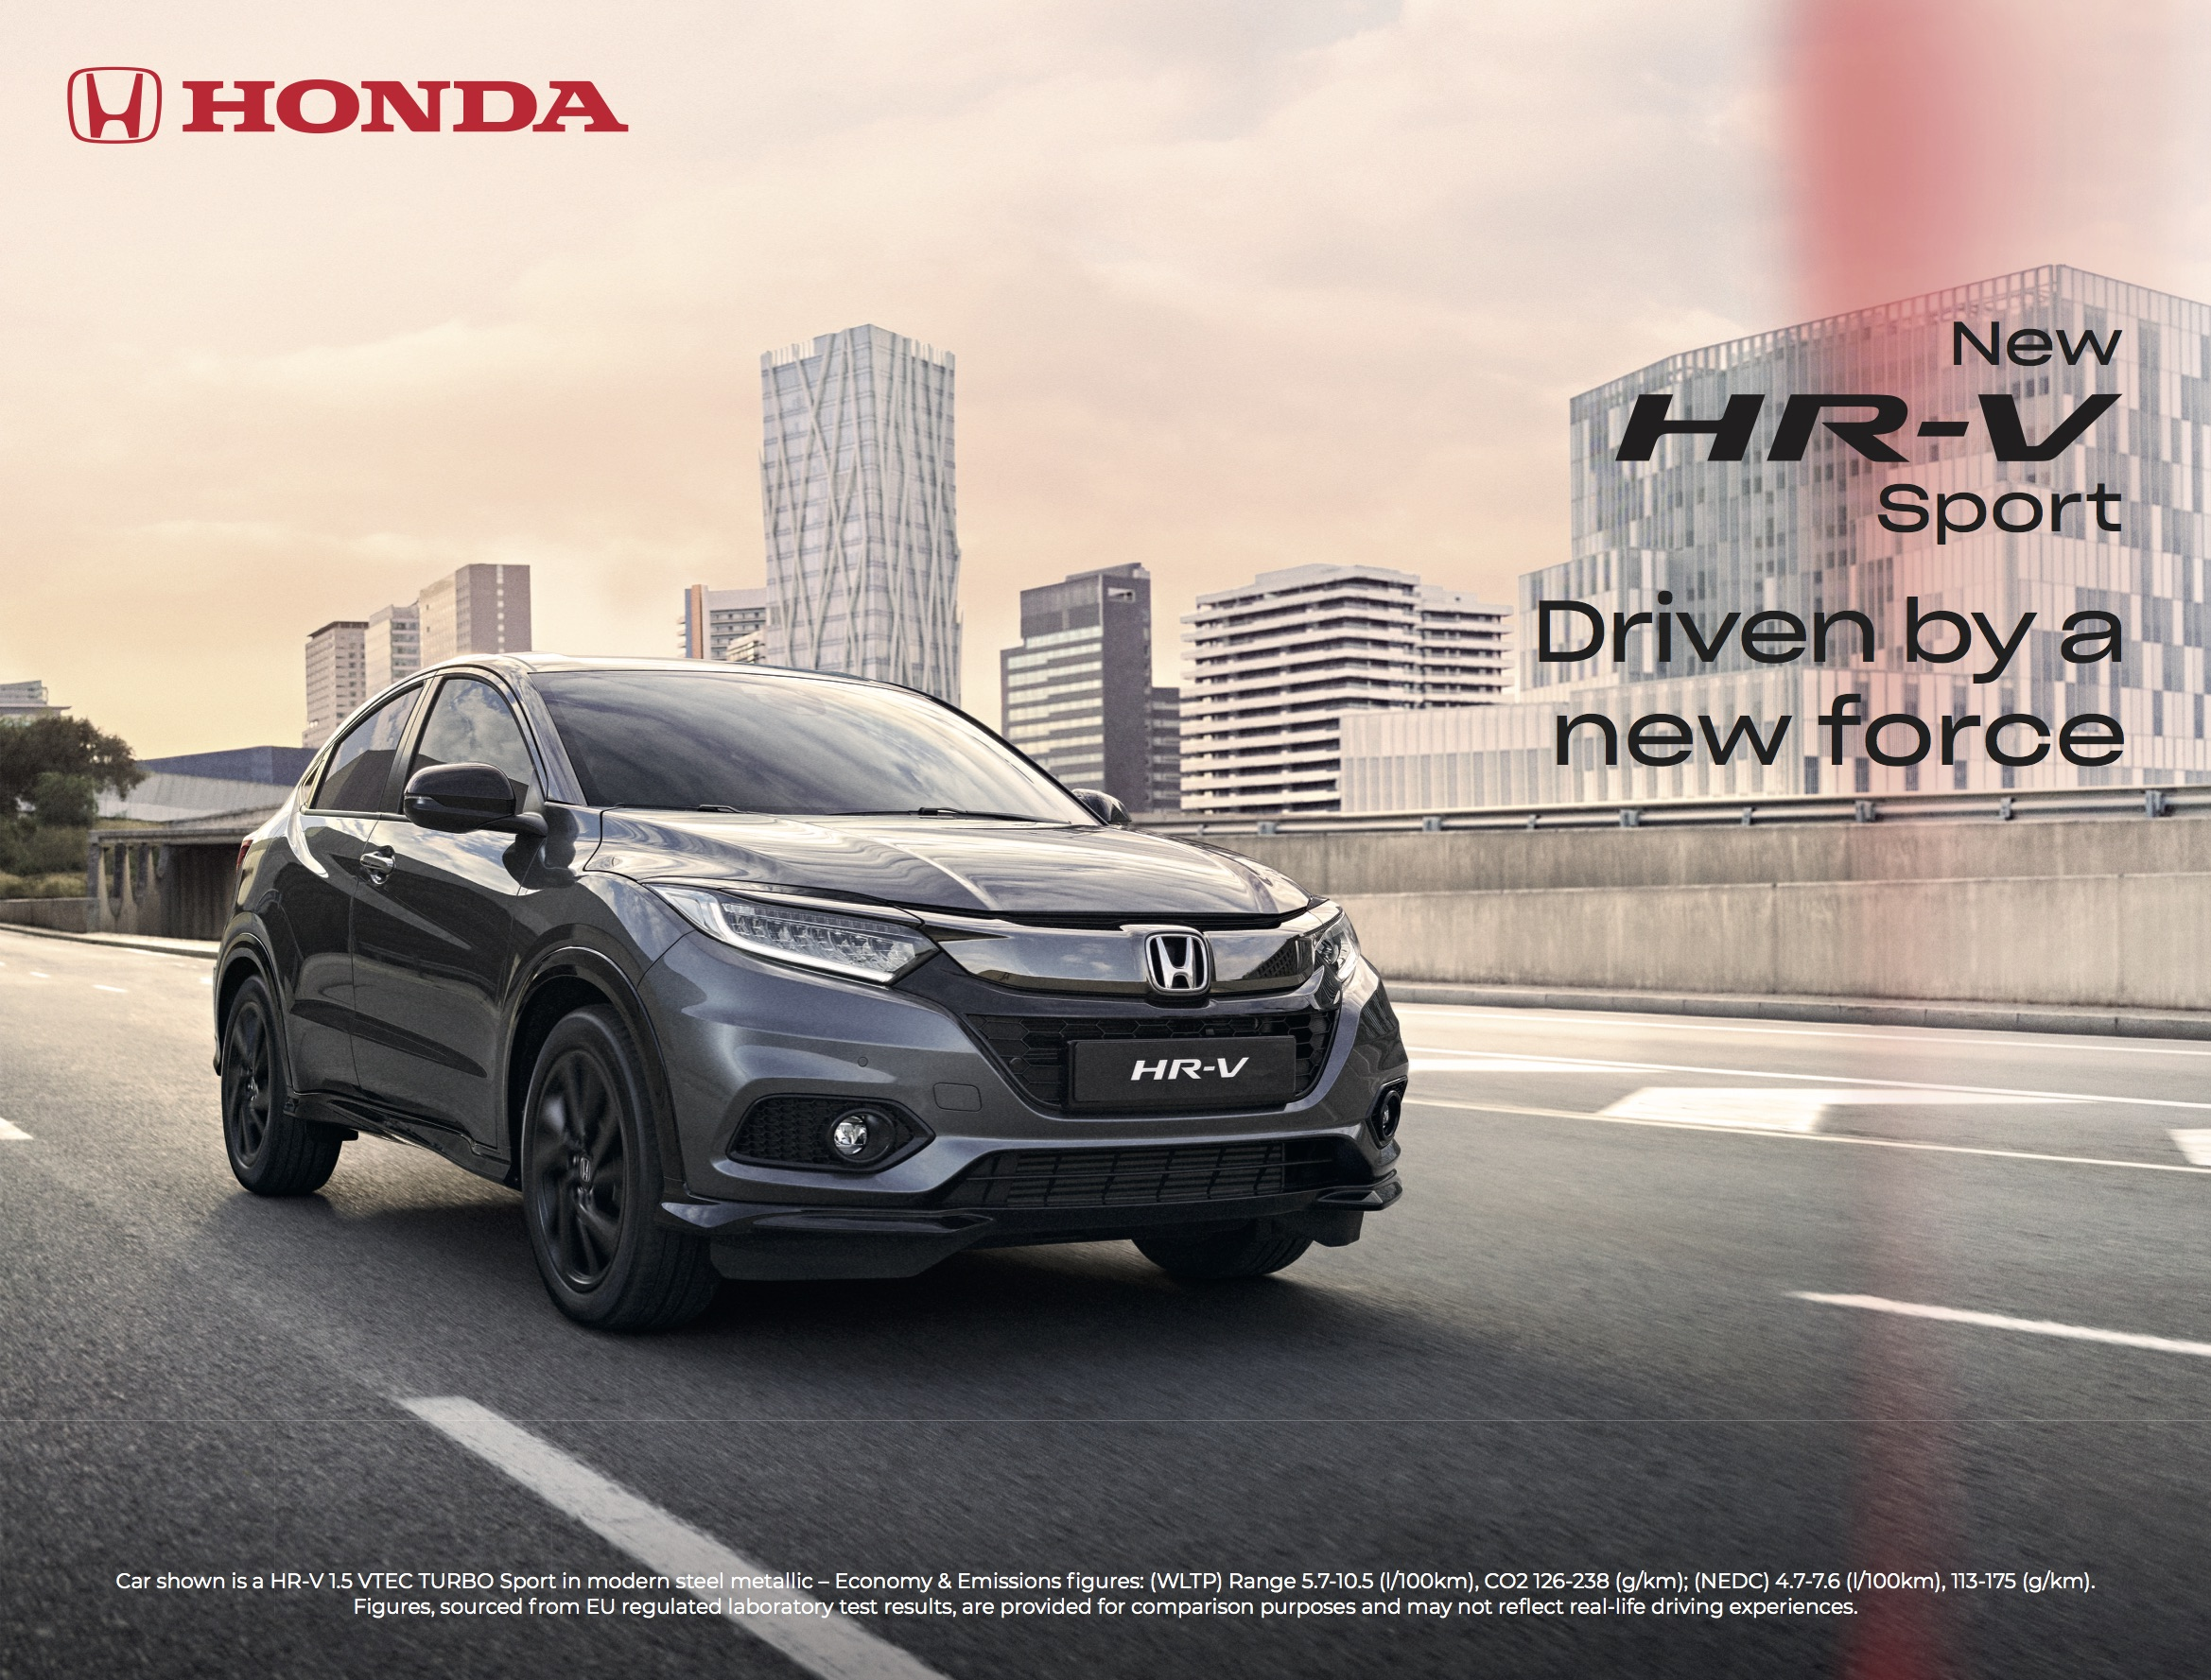 HONDA - HR-V Gravity-support